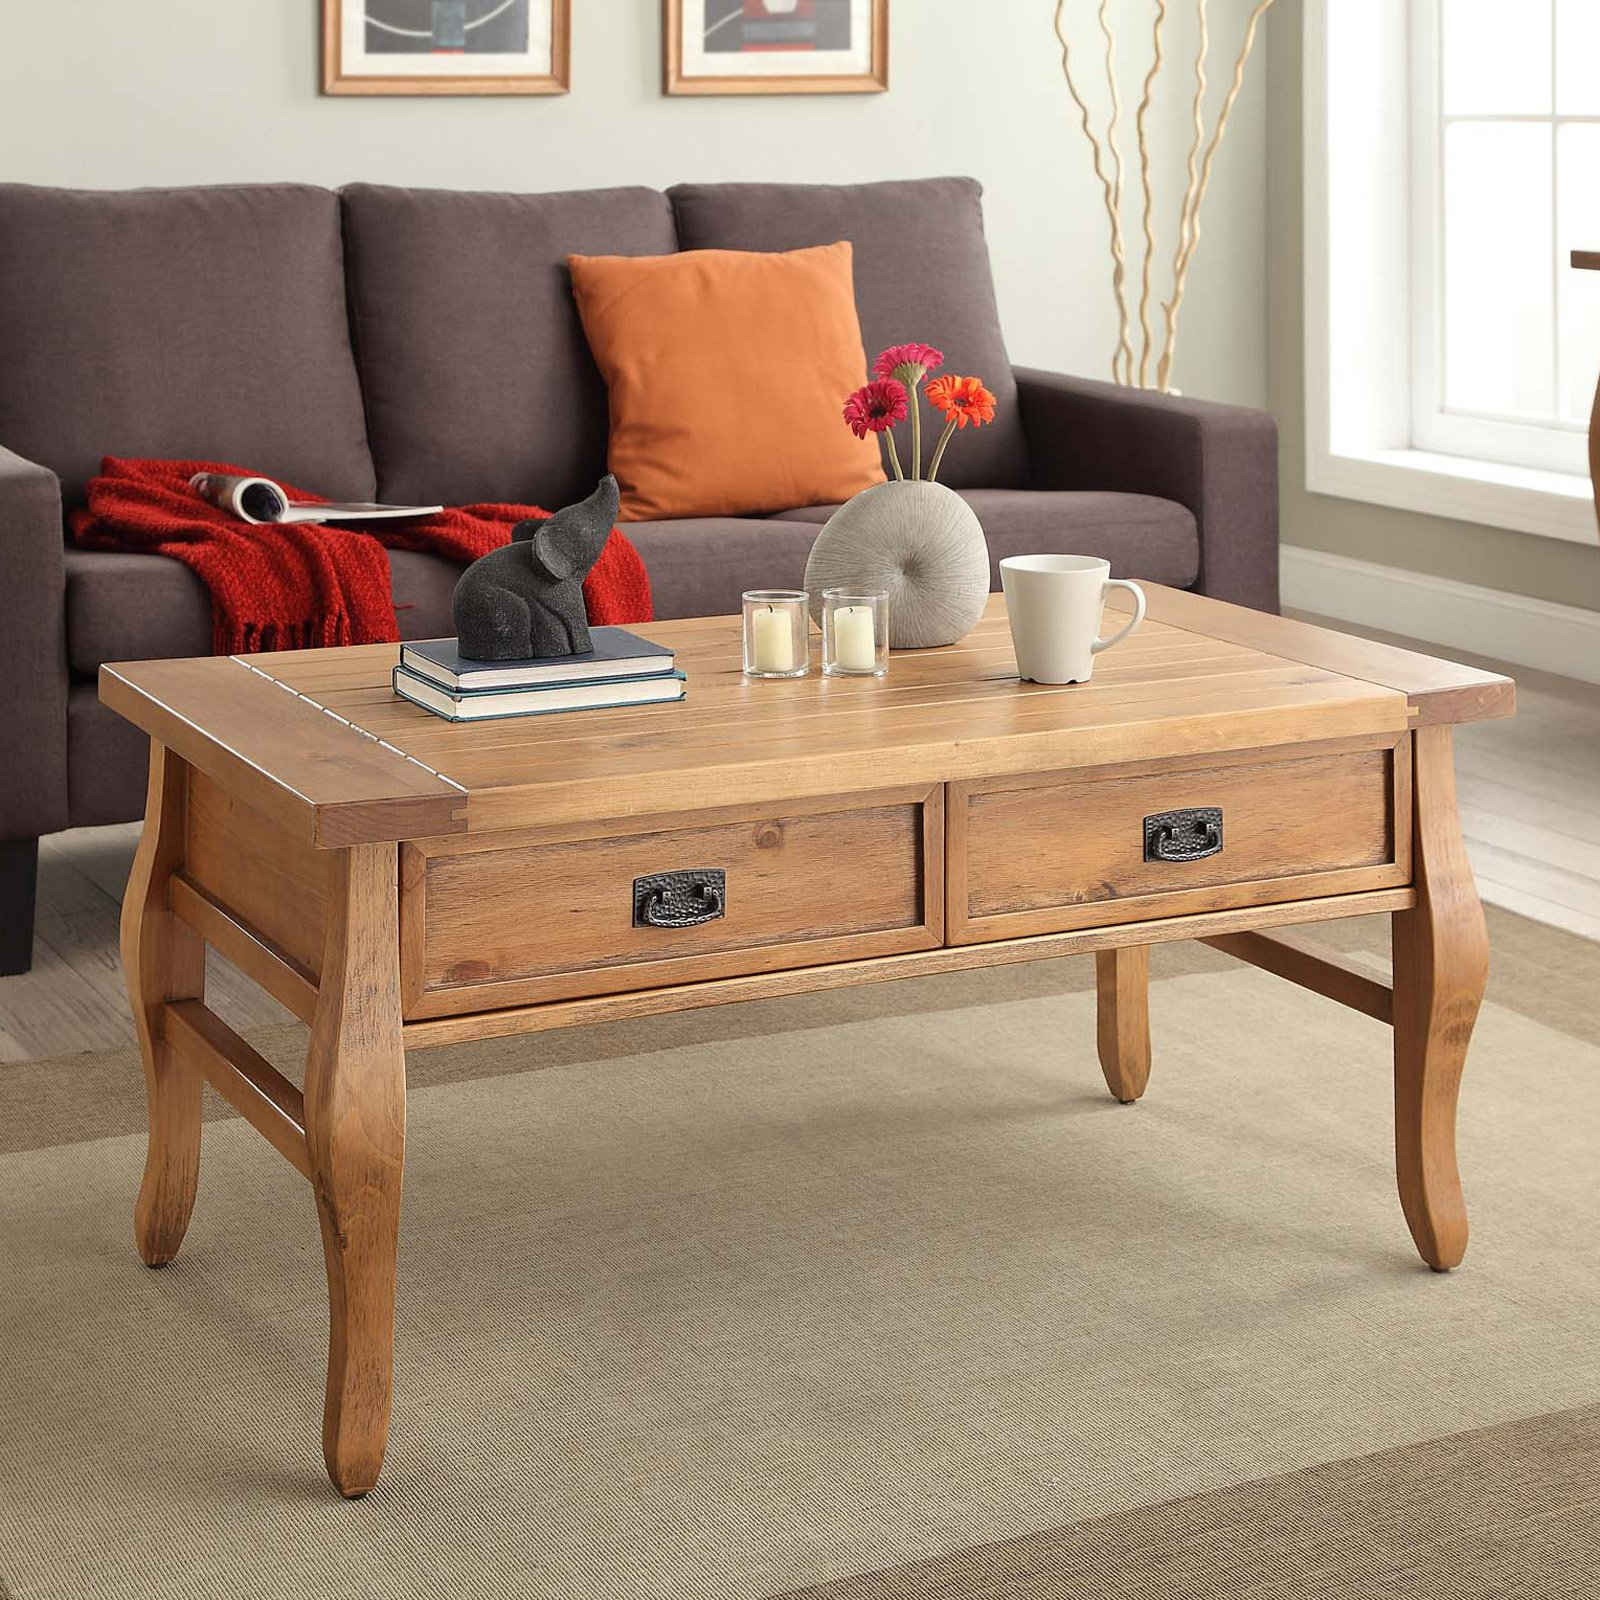 Popular Linon Santa Fe Coffee Table, Two Storage Drawers, Antique Finish Within Santa Fe Coffee Tables (Gallery 12 of 20)